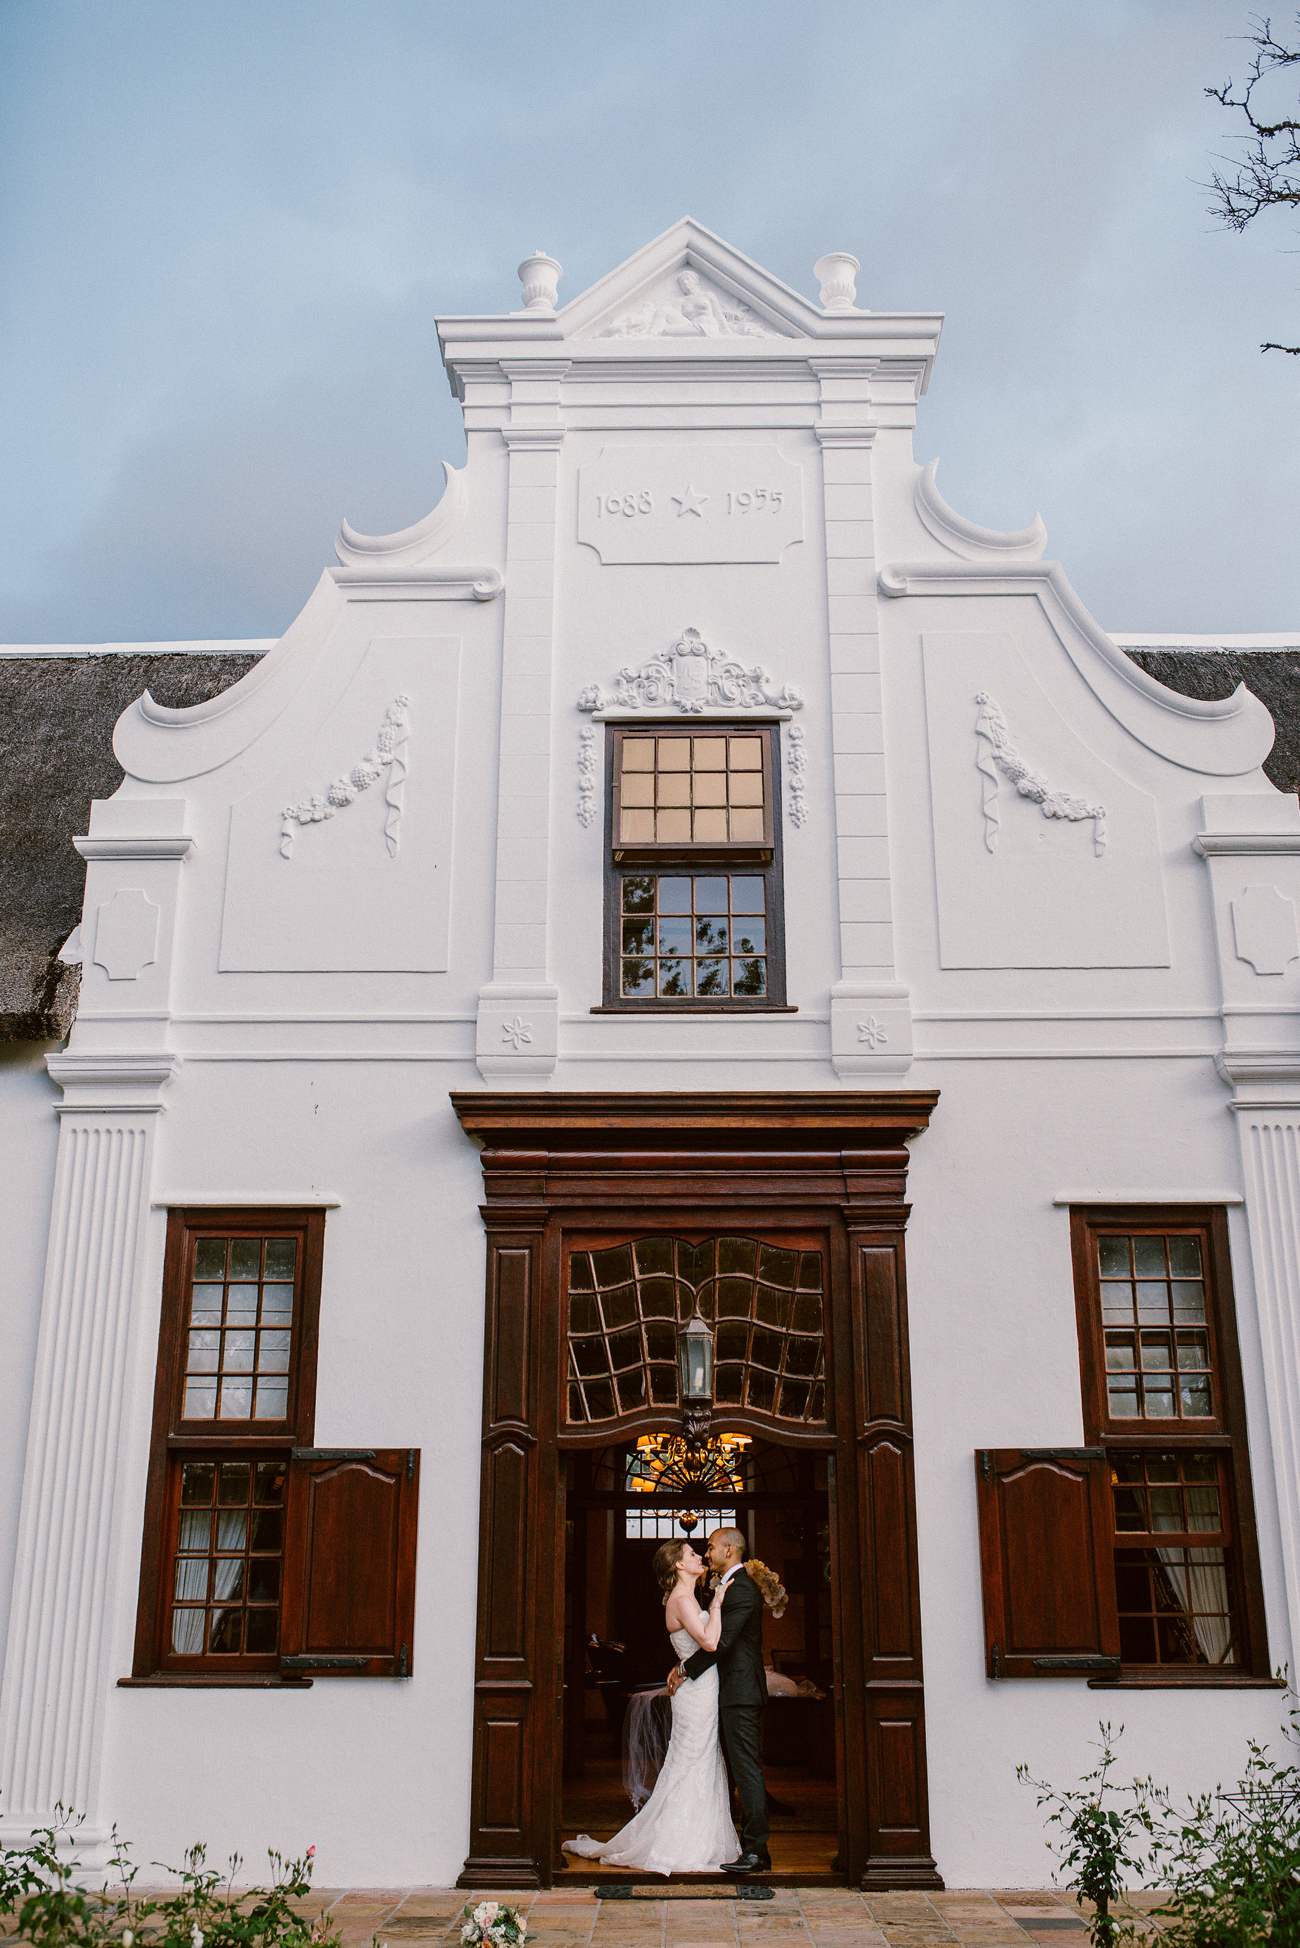 Cape Dutch Manor House Wedding | Image: Lad & Lass Photography